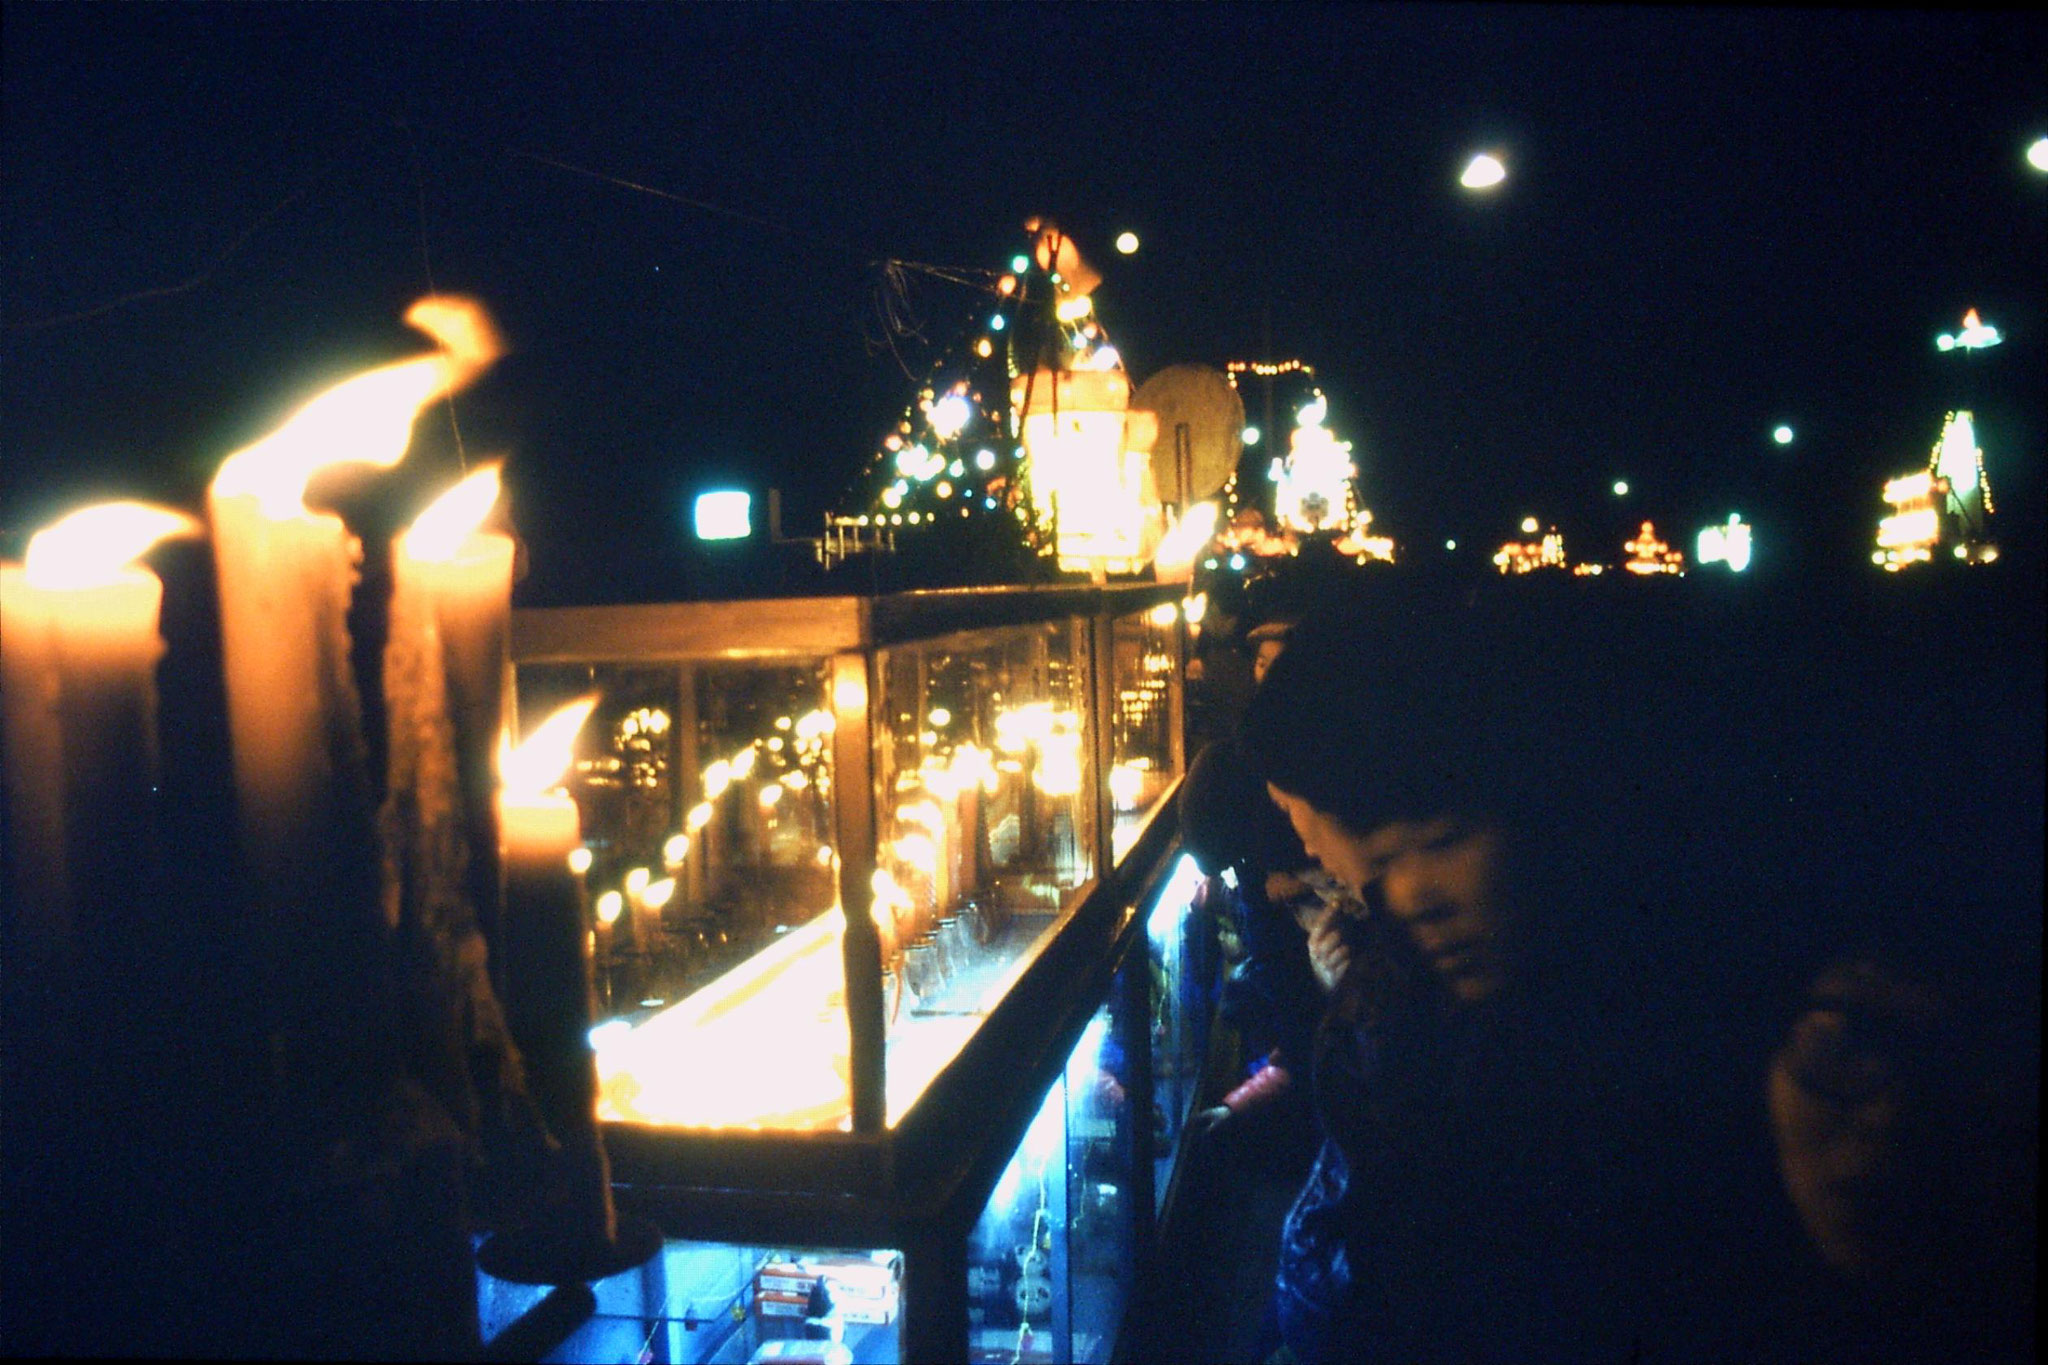 20/2/1989: 33: Qufu New Year lanterns